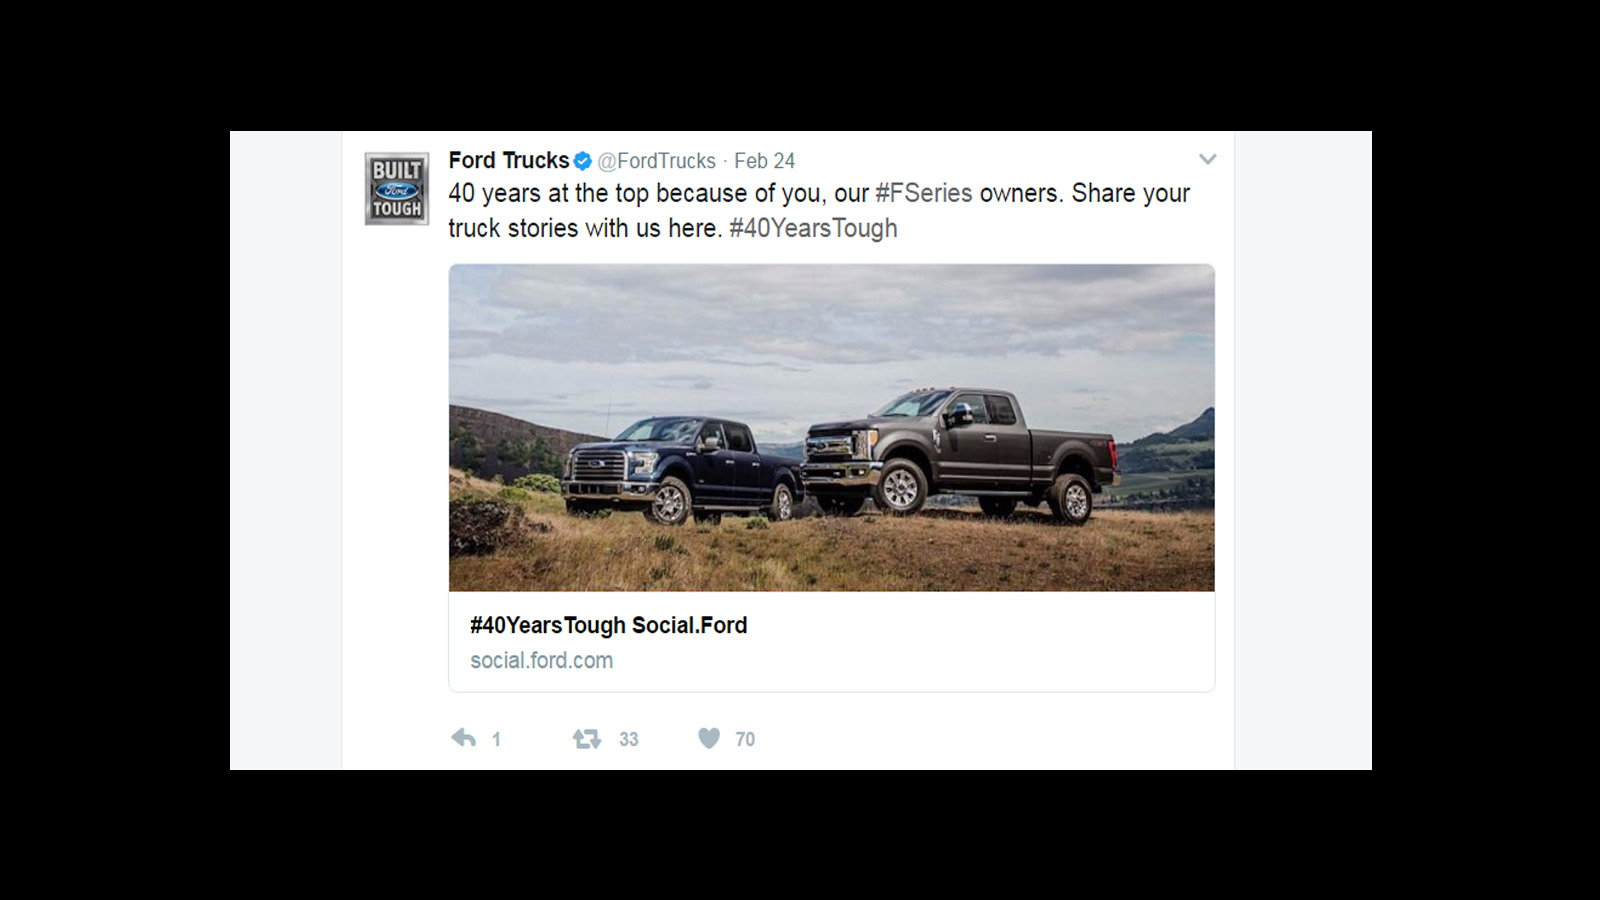 Ford F-Series Top Selling Truck for 40 Years Straight